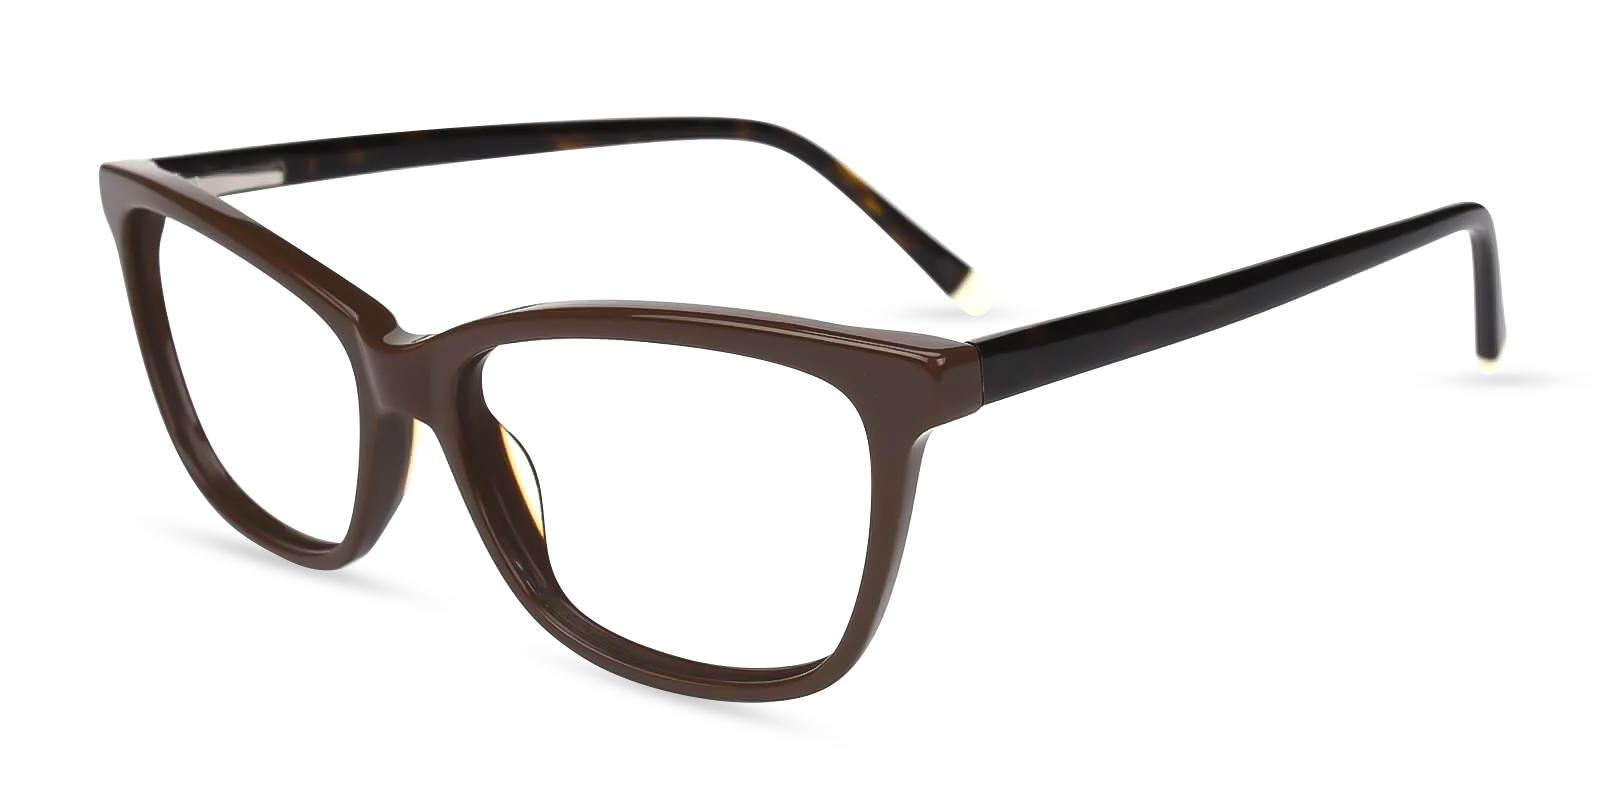 Zion Brown Acetate Eyeglasses , SpringHinges , UniversalBridgeFit Frames from ABBE Glasses